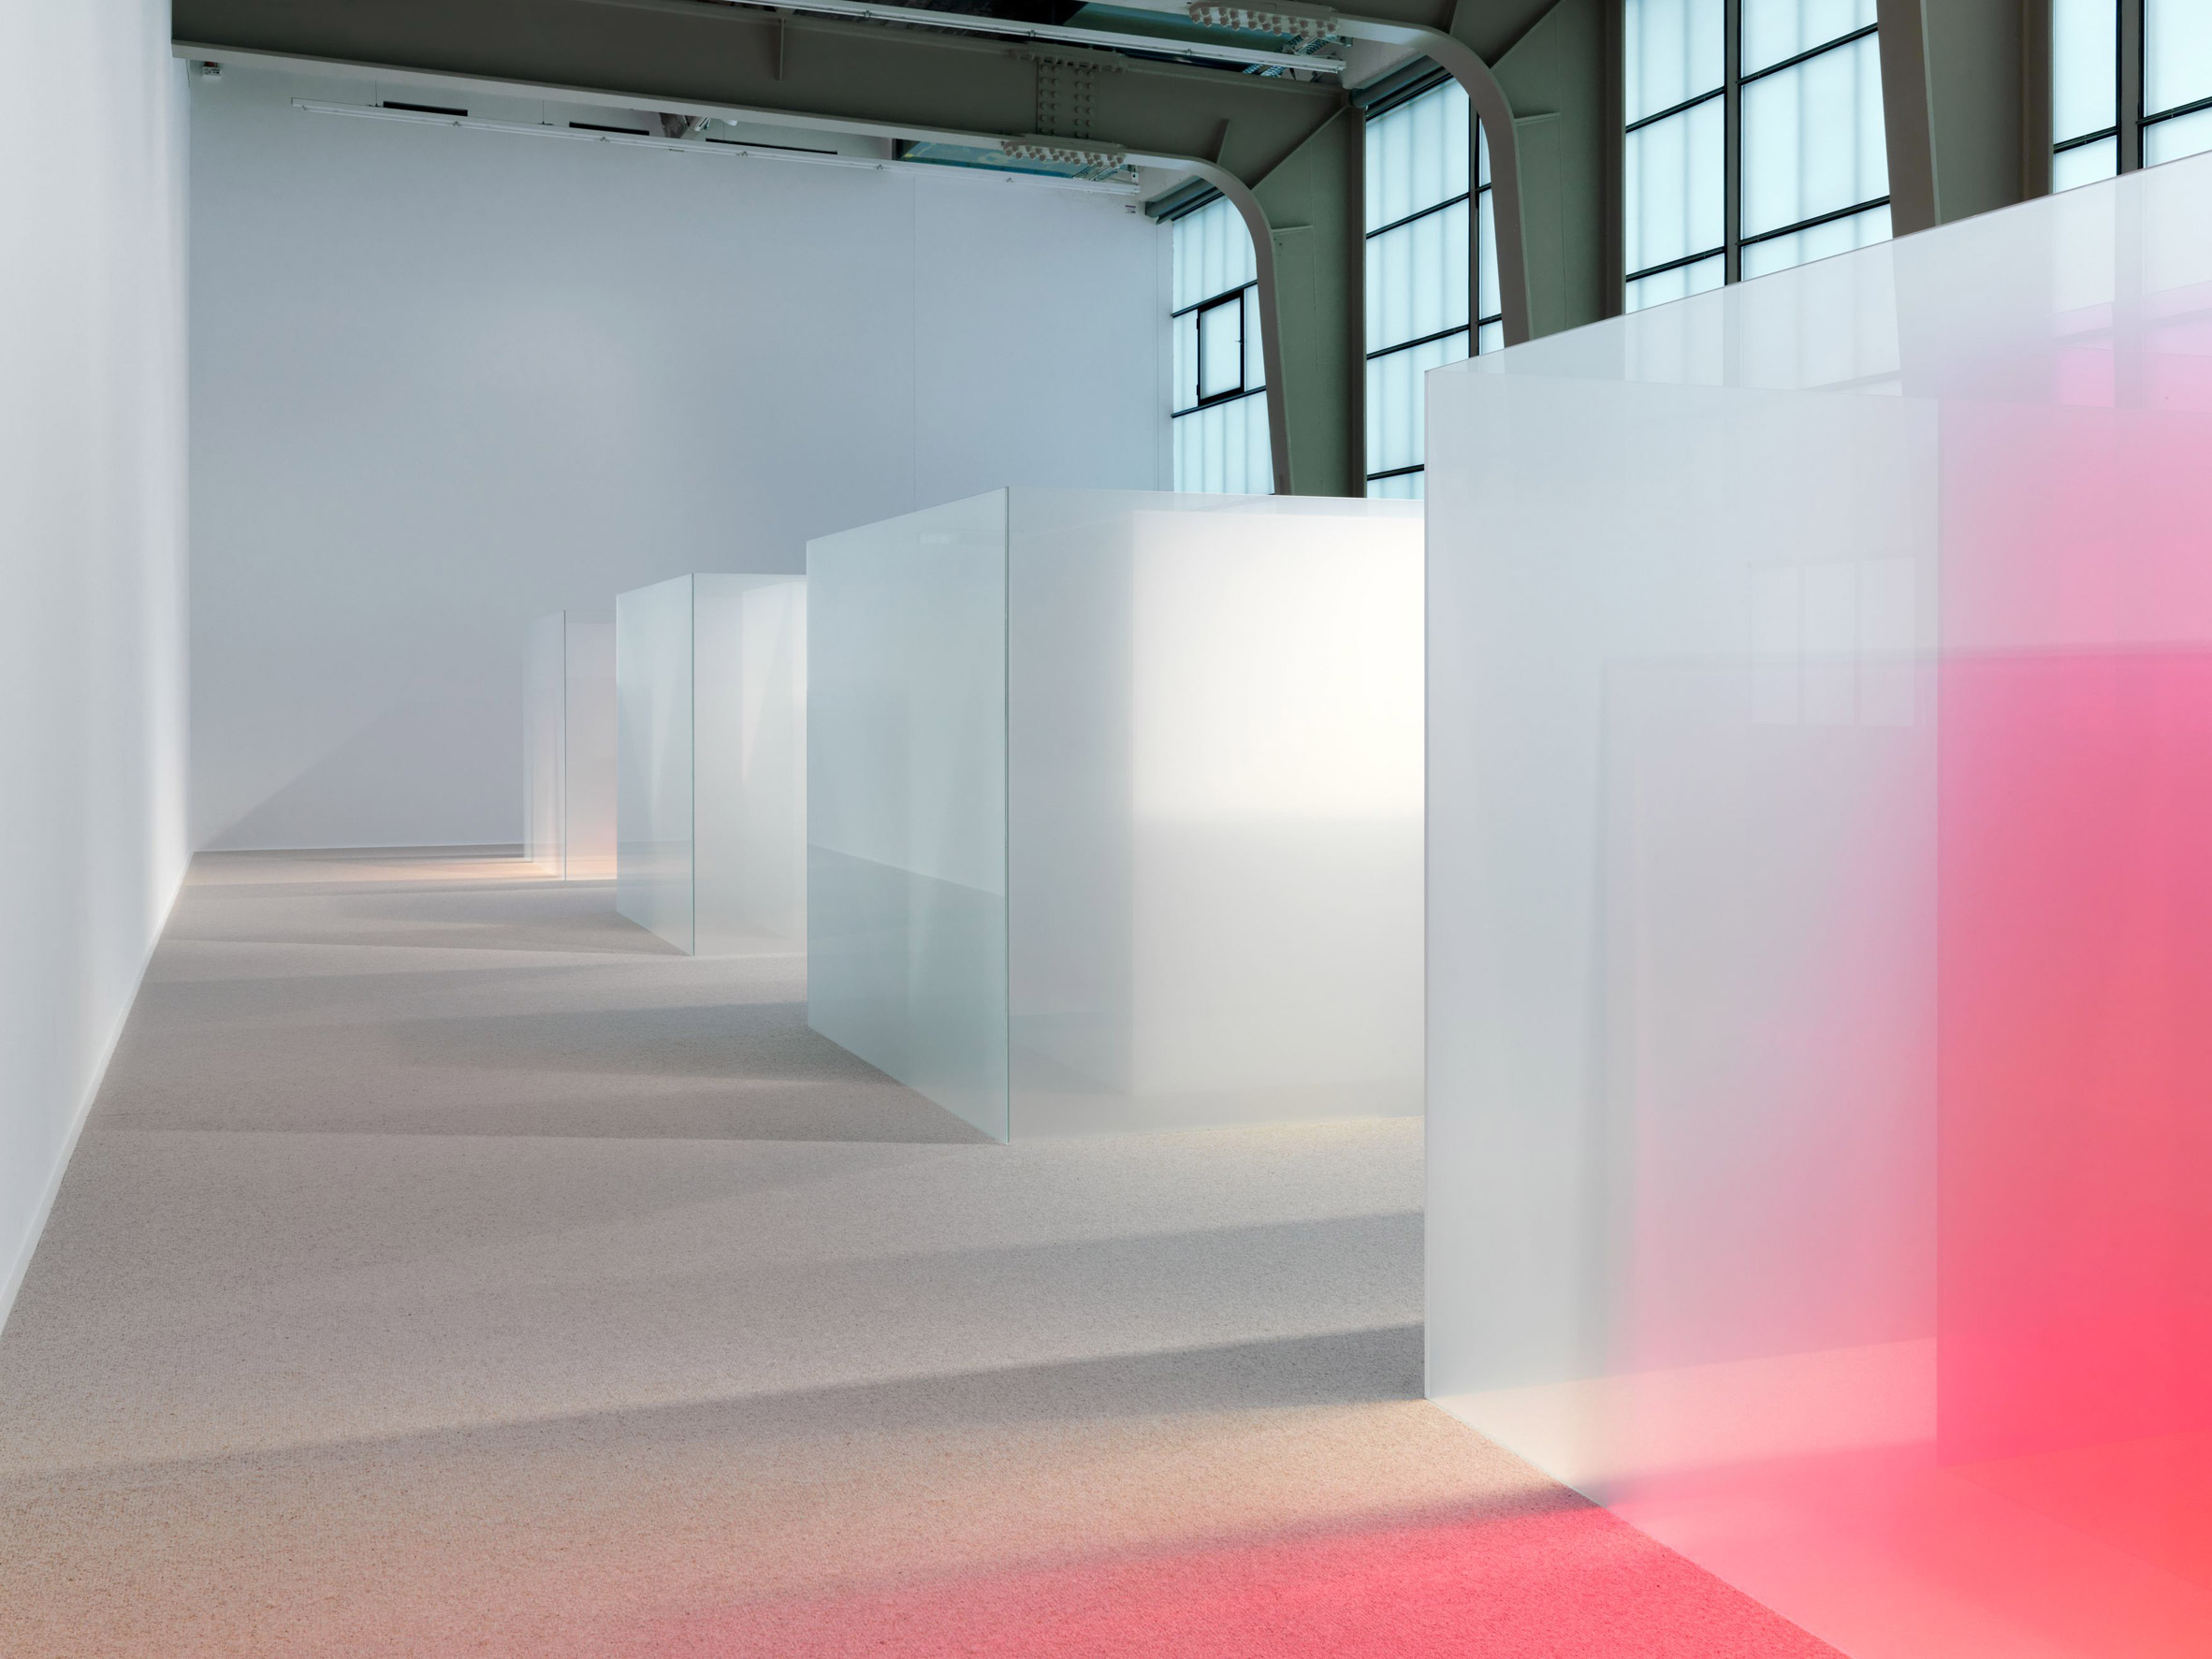 Larry Bell's glass cubes mimic California light and fog